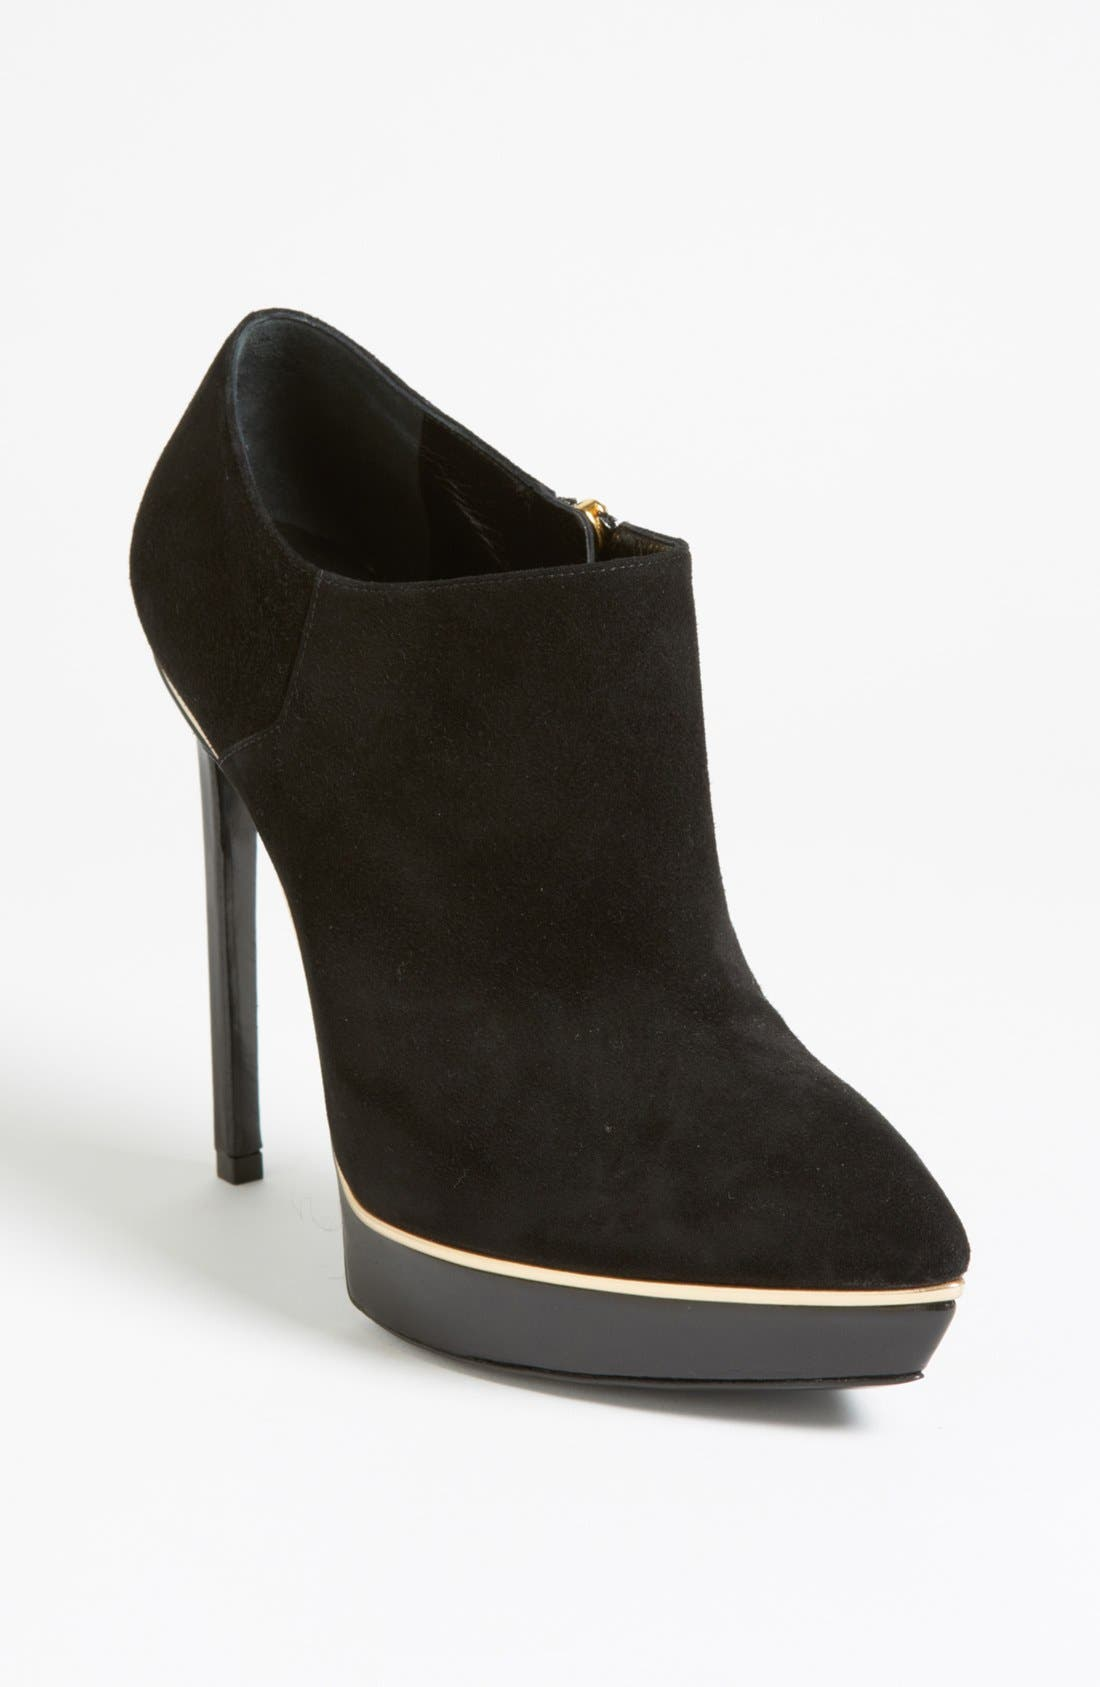 Main Image - Saint Laurent 'Janie Metal' Bootie